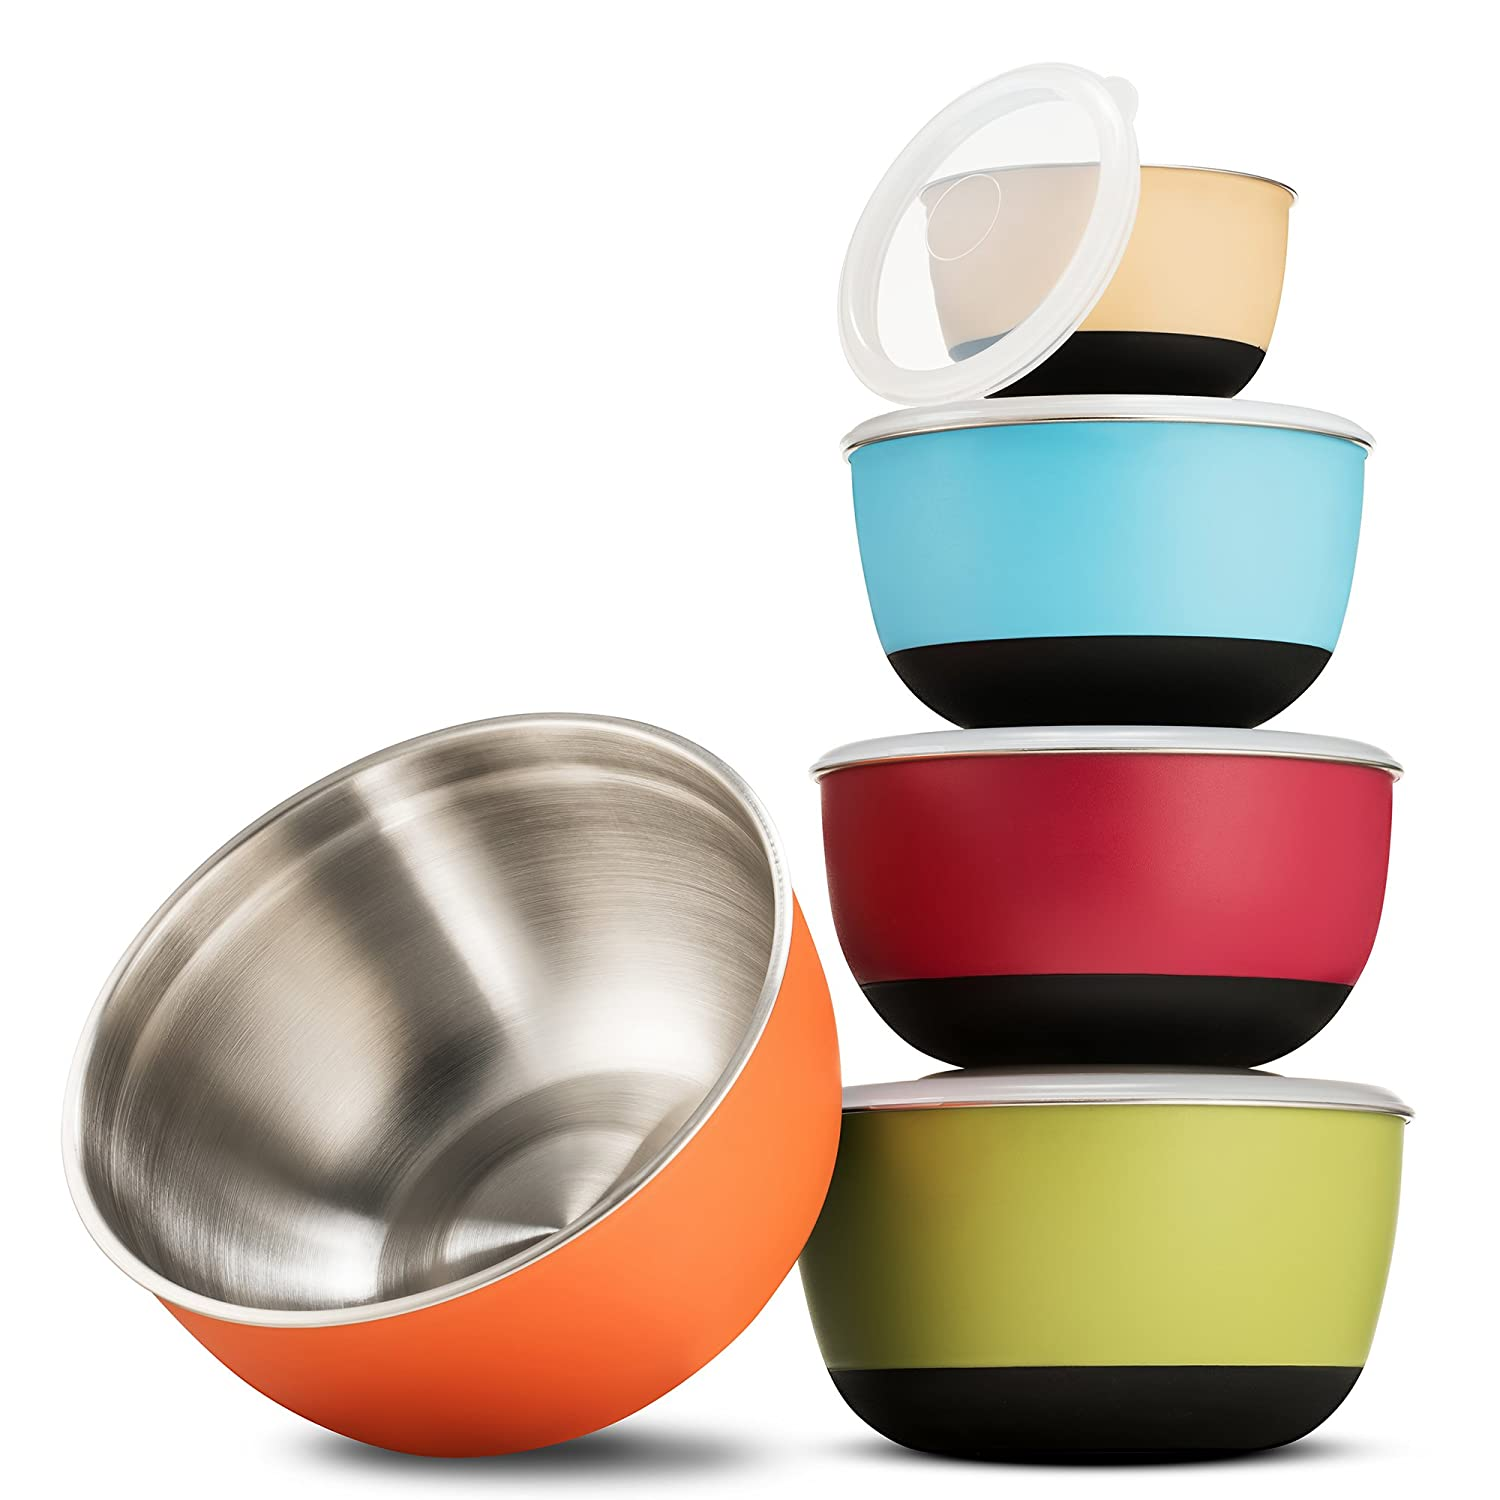 FineDine Multicolor Stainless Steel Mixing Bowl Set of 5, Stainless Steel with Plastic Exterior Non-Skid Bottom for Easy Mixing - ¾ , 1 ½, 2 ⅖, 3, and 5 qt Sizes. 1 ½ 2 ⅖ FD-S1201